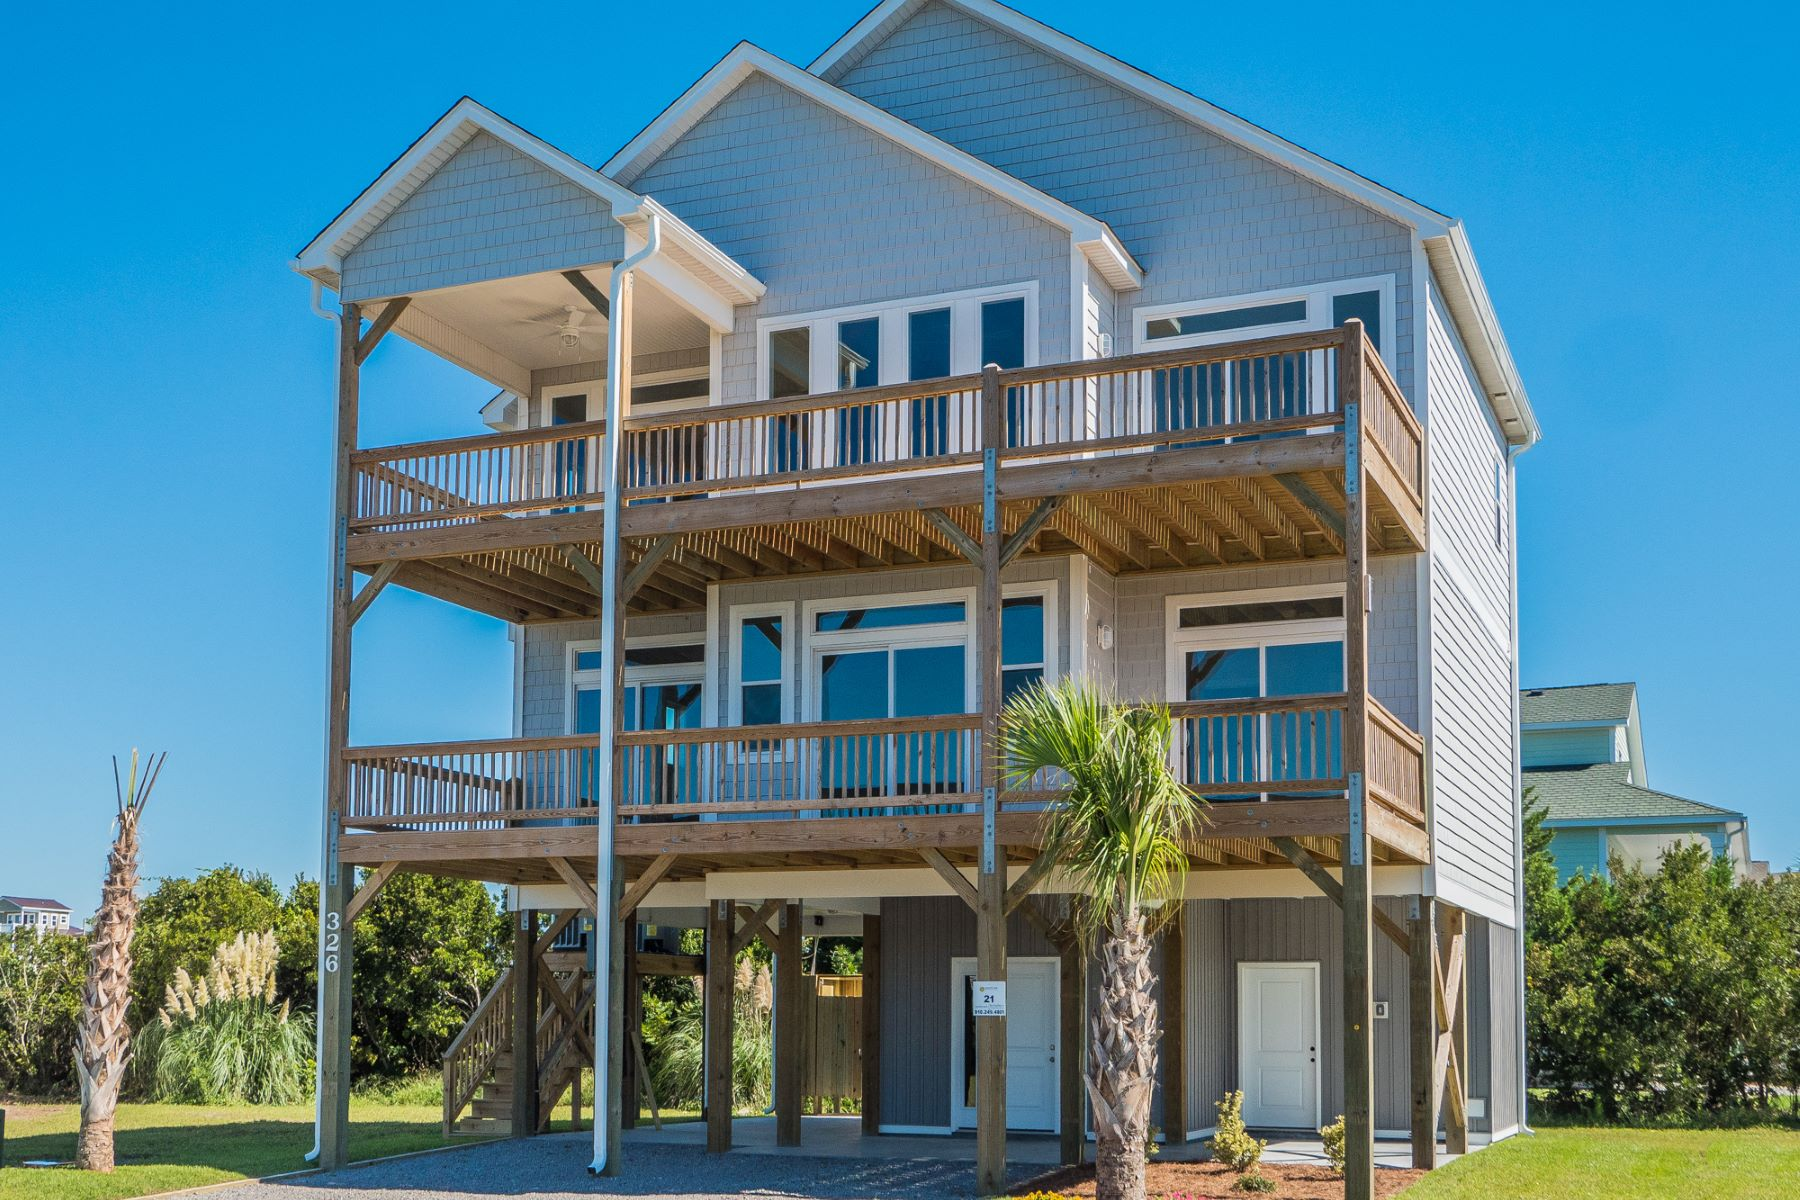 Single Family Home for Sale at Island Home in Nautic Bay 314 Oceanaire Ln, Surf City, North Carolina, 28445 United States